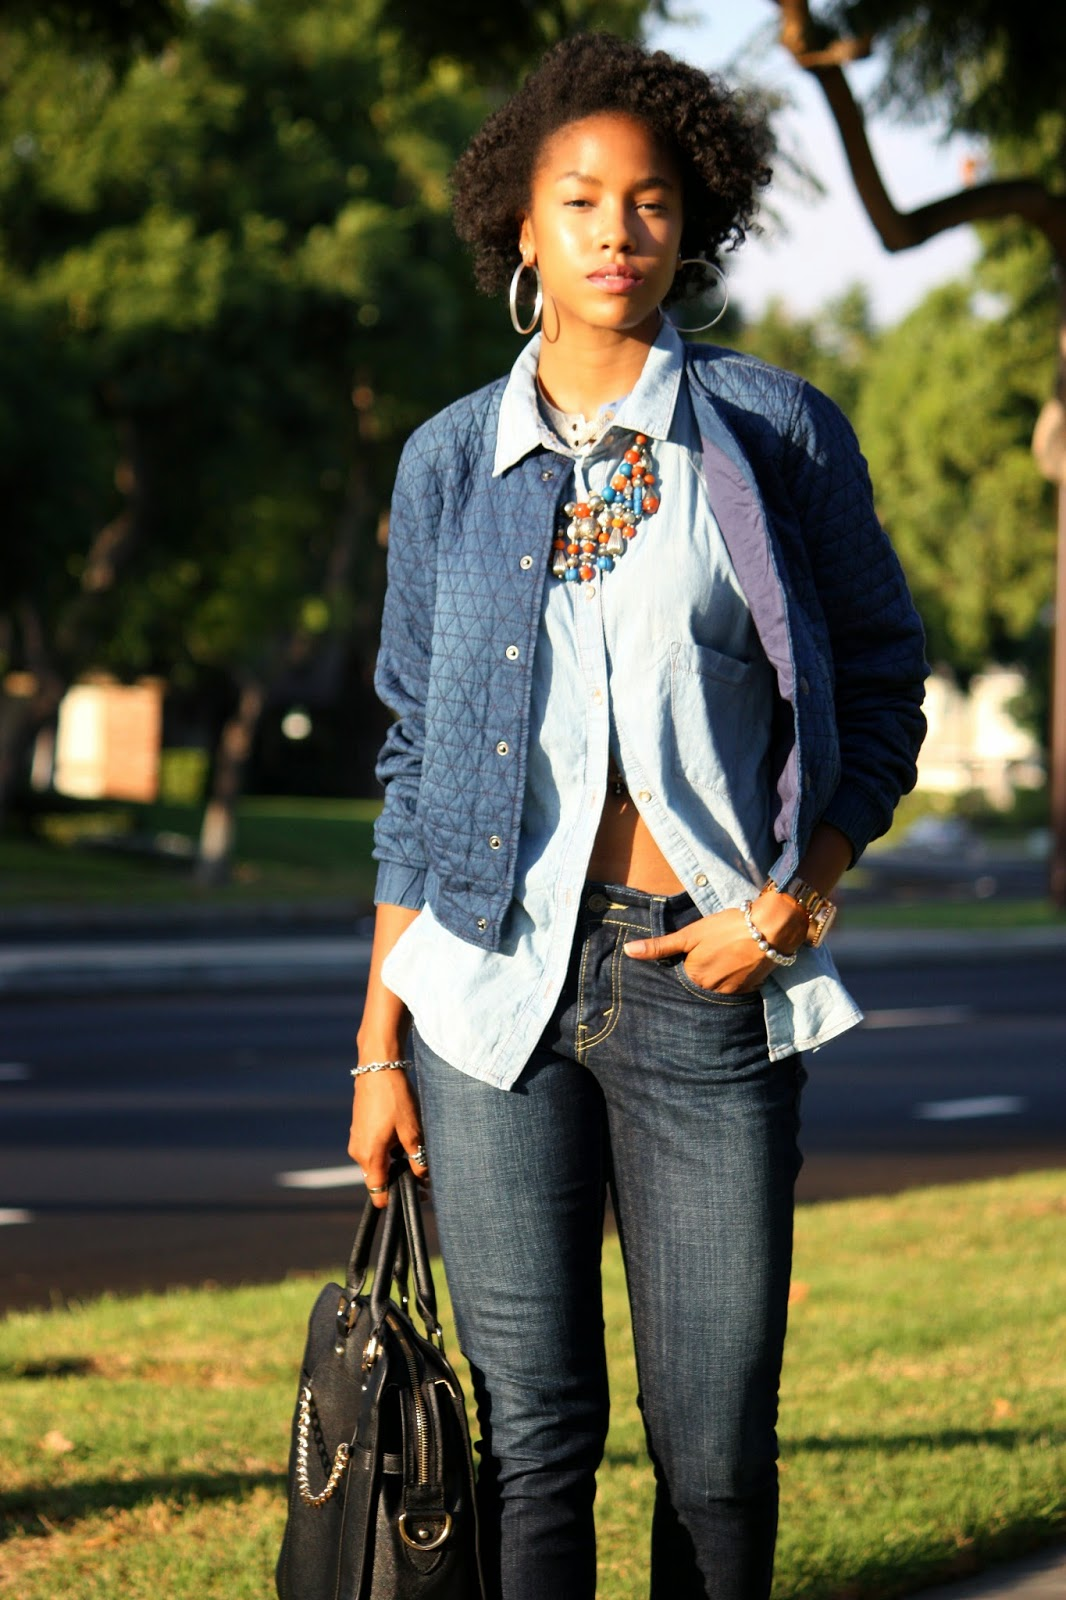 Fashion and personal style blogger Marquise C Brown